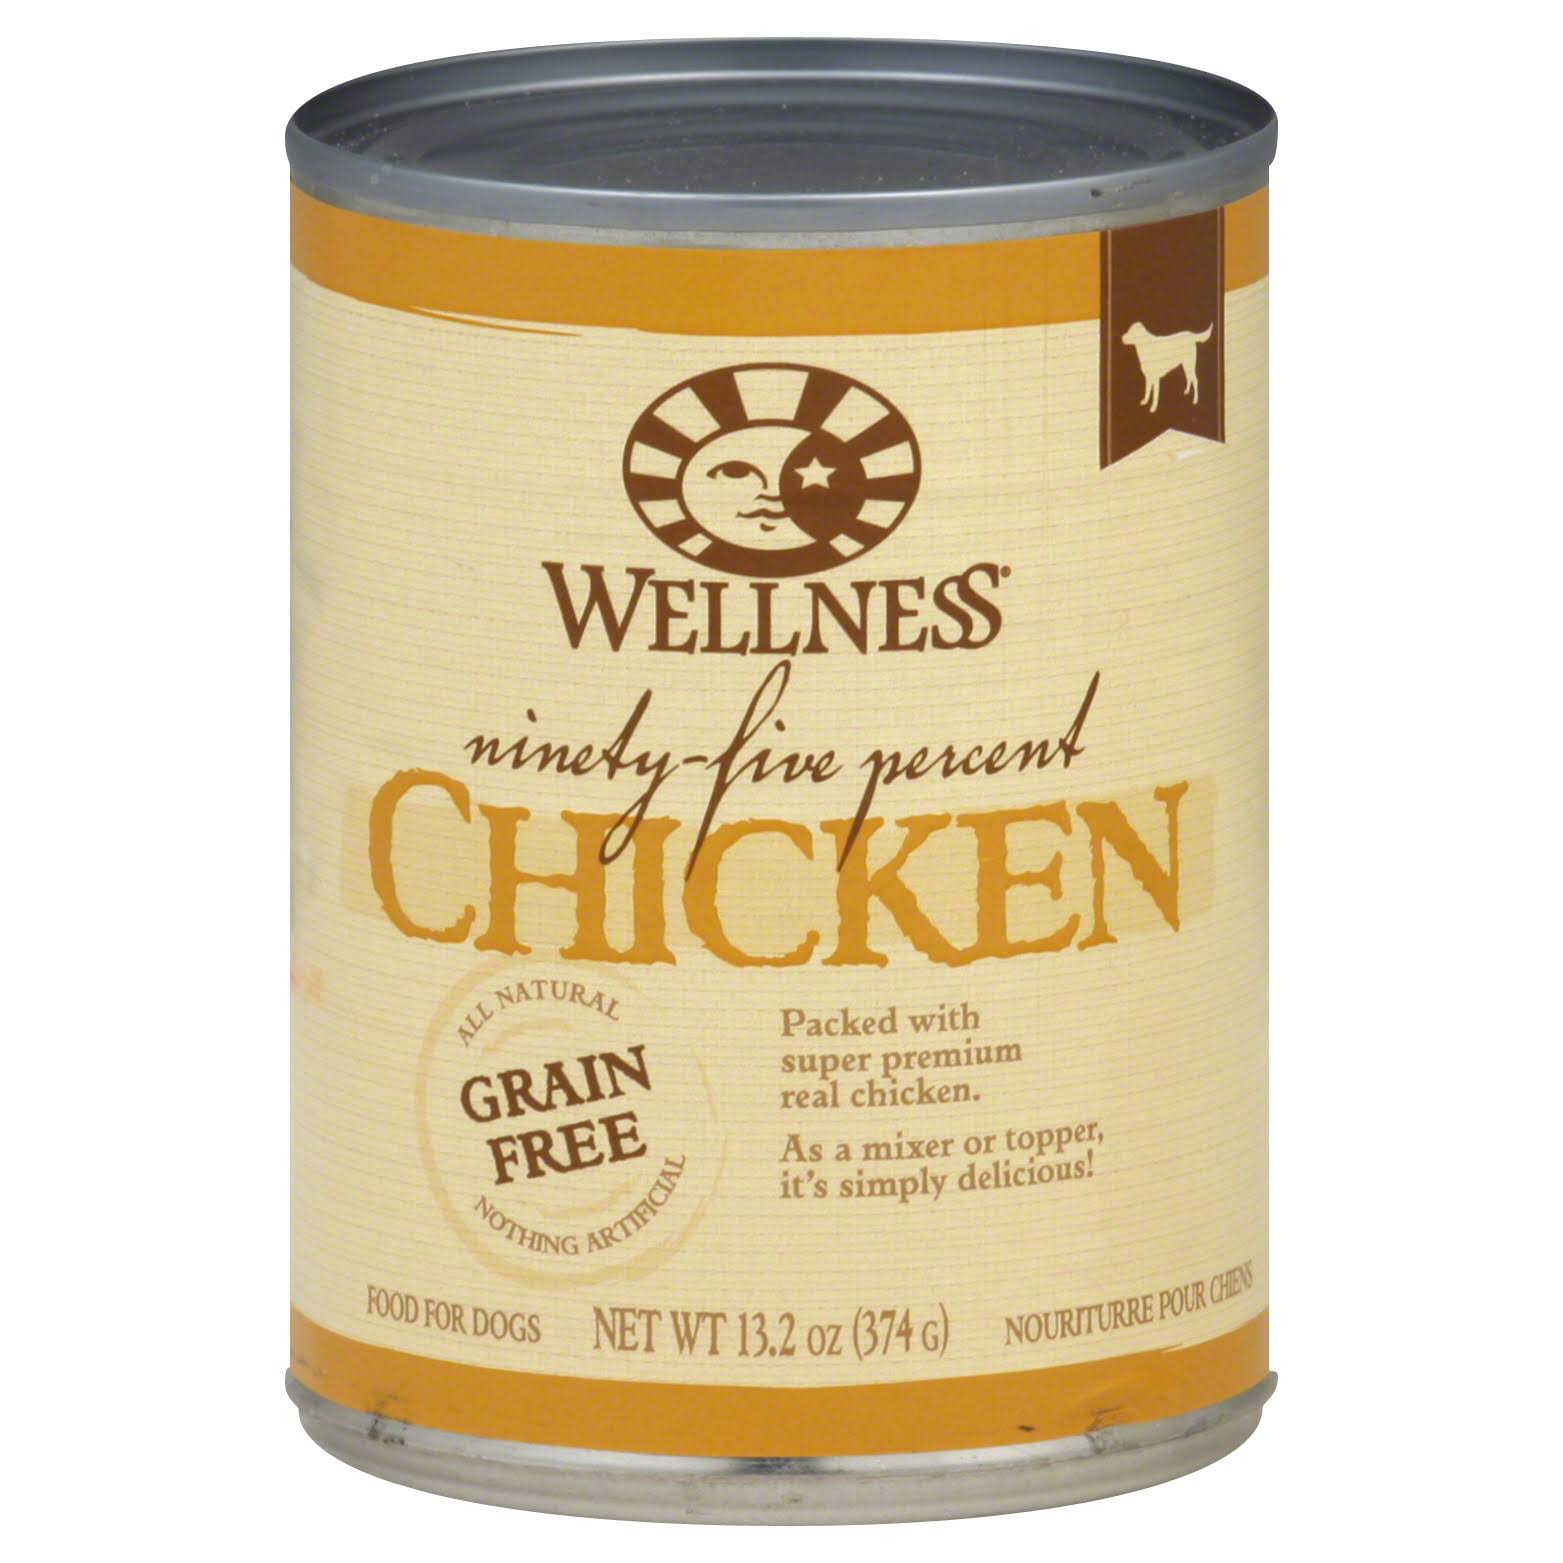 Wellness Dog Food - Chicken, 374g